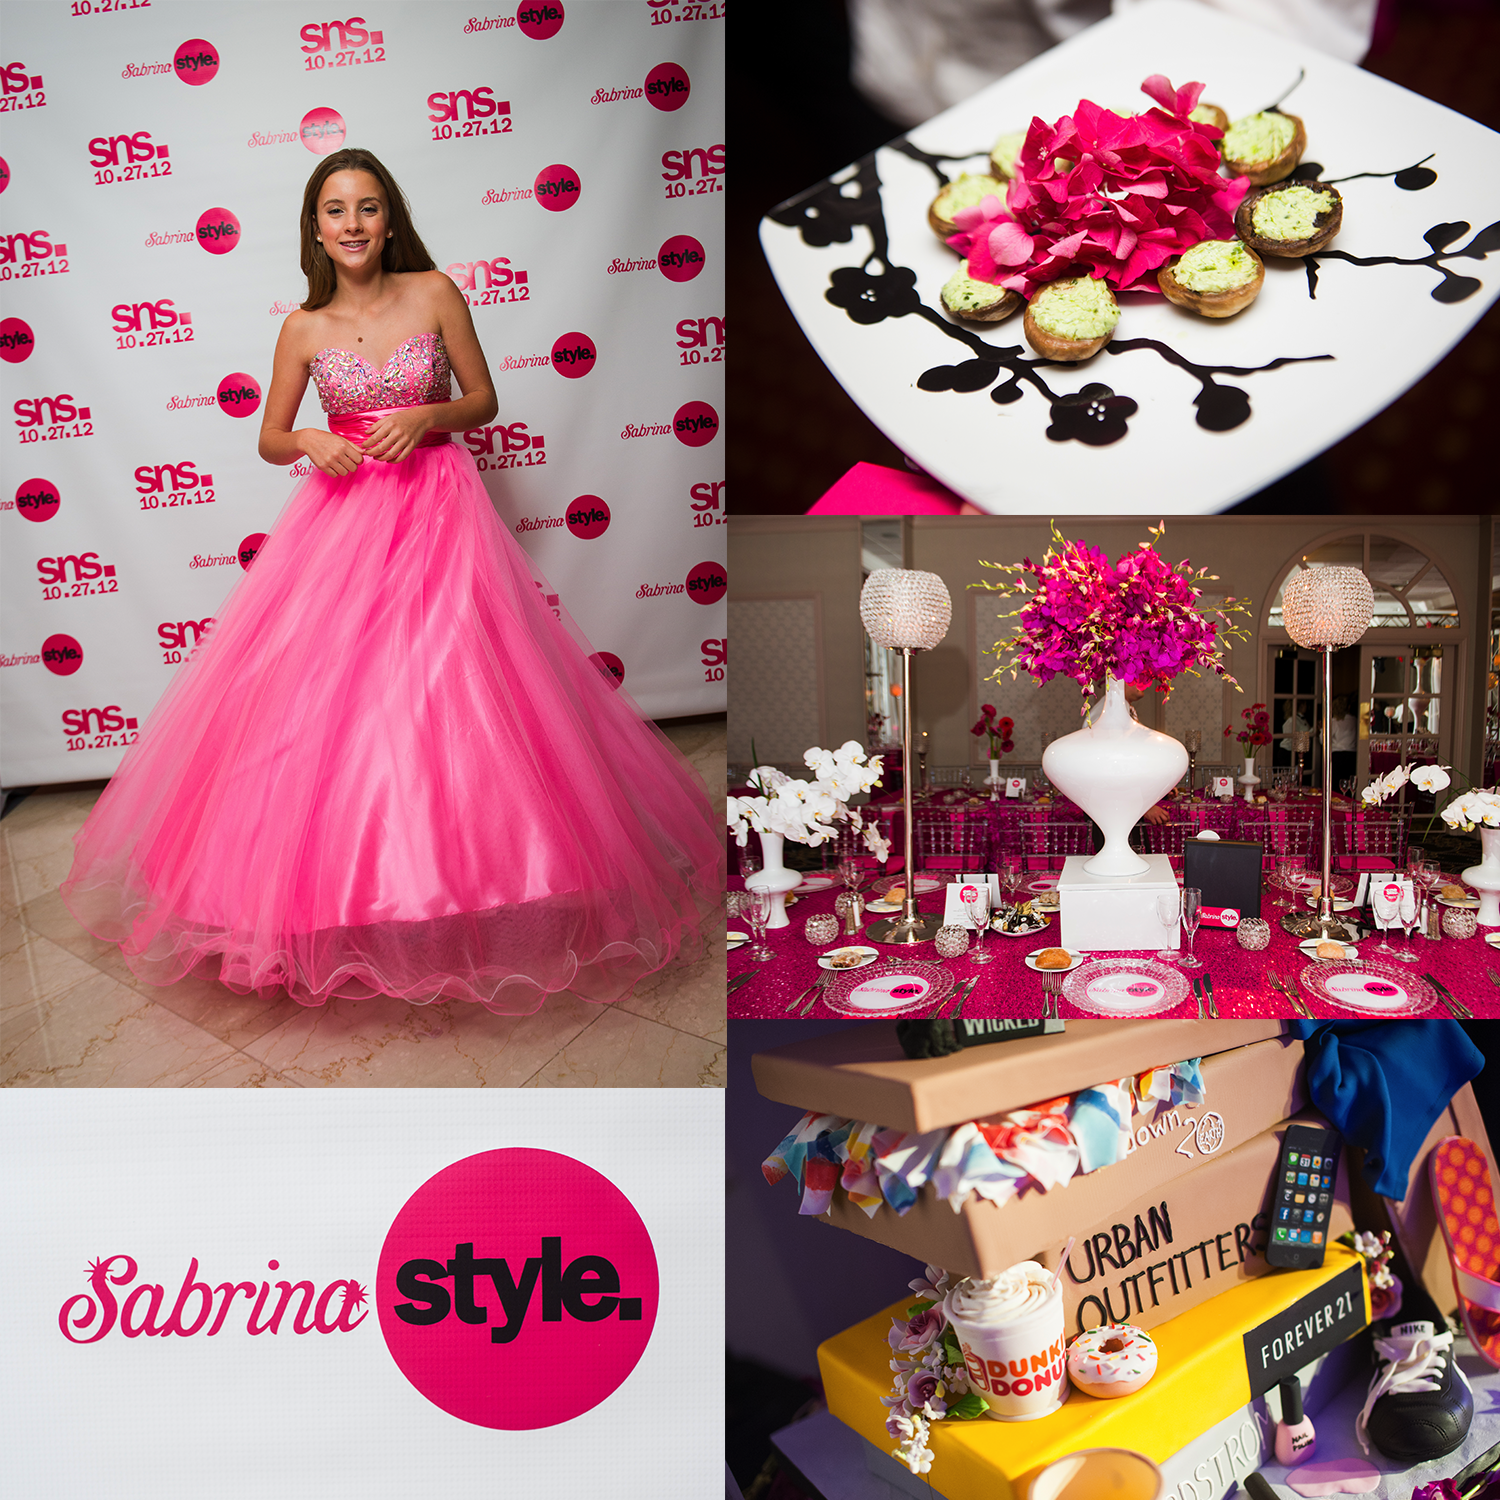 Bar-Bat-Mitzvah-Premier-Philadelphia-Photographer-Details-Style-Dress-Cake-Theme-Social-Trendy-Floral-Dessert-Treats-Center-Piece-Evantine-Design-Green-Valley-Country-Club-Hip-Entertainment